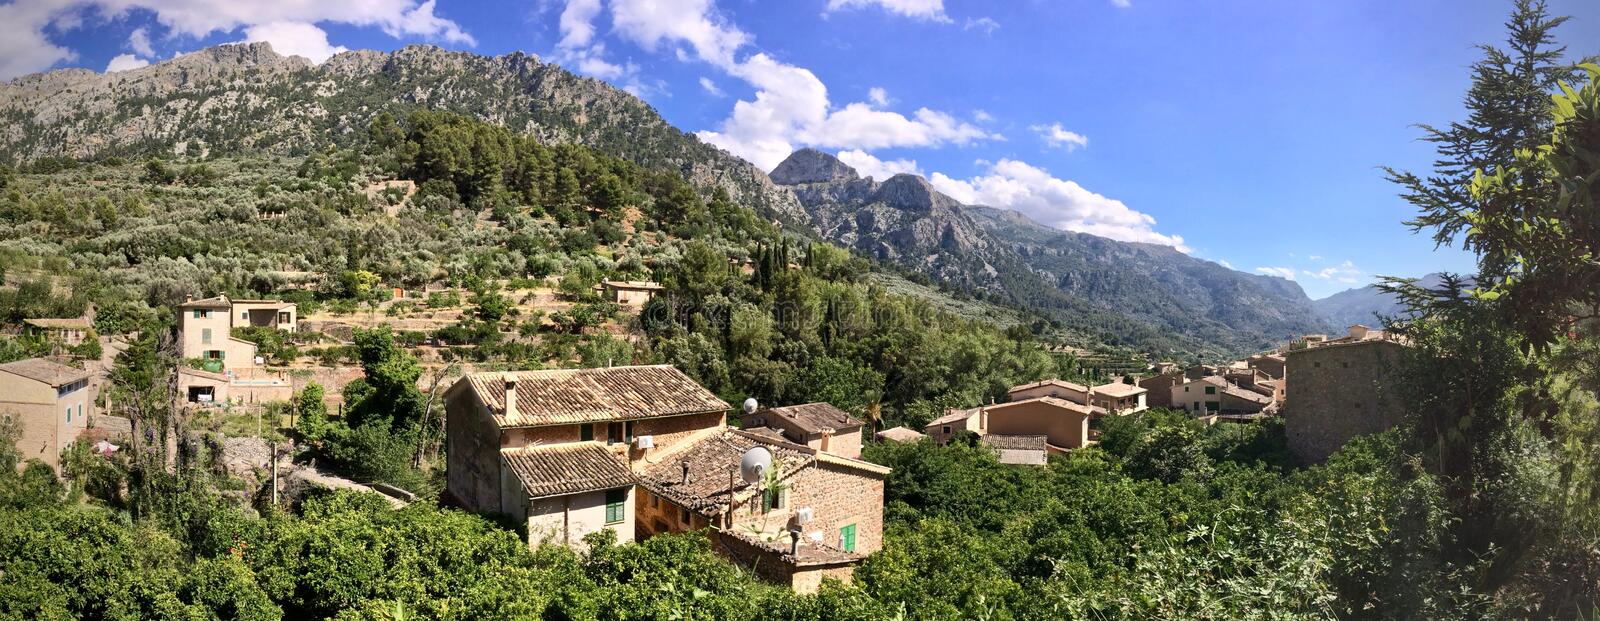 Panorama of Fornalutx rooftops, Mallorca, Spain. Aerial view of Fornalutx outdoors in a mountain valley royalty free stock image